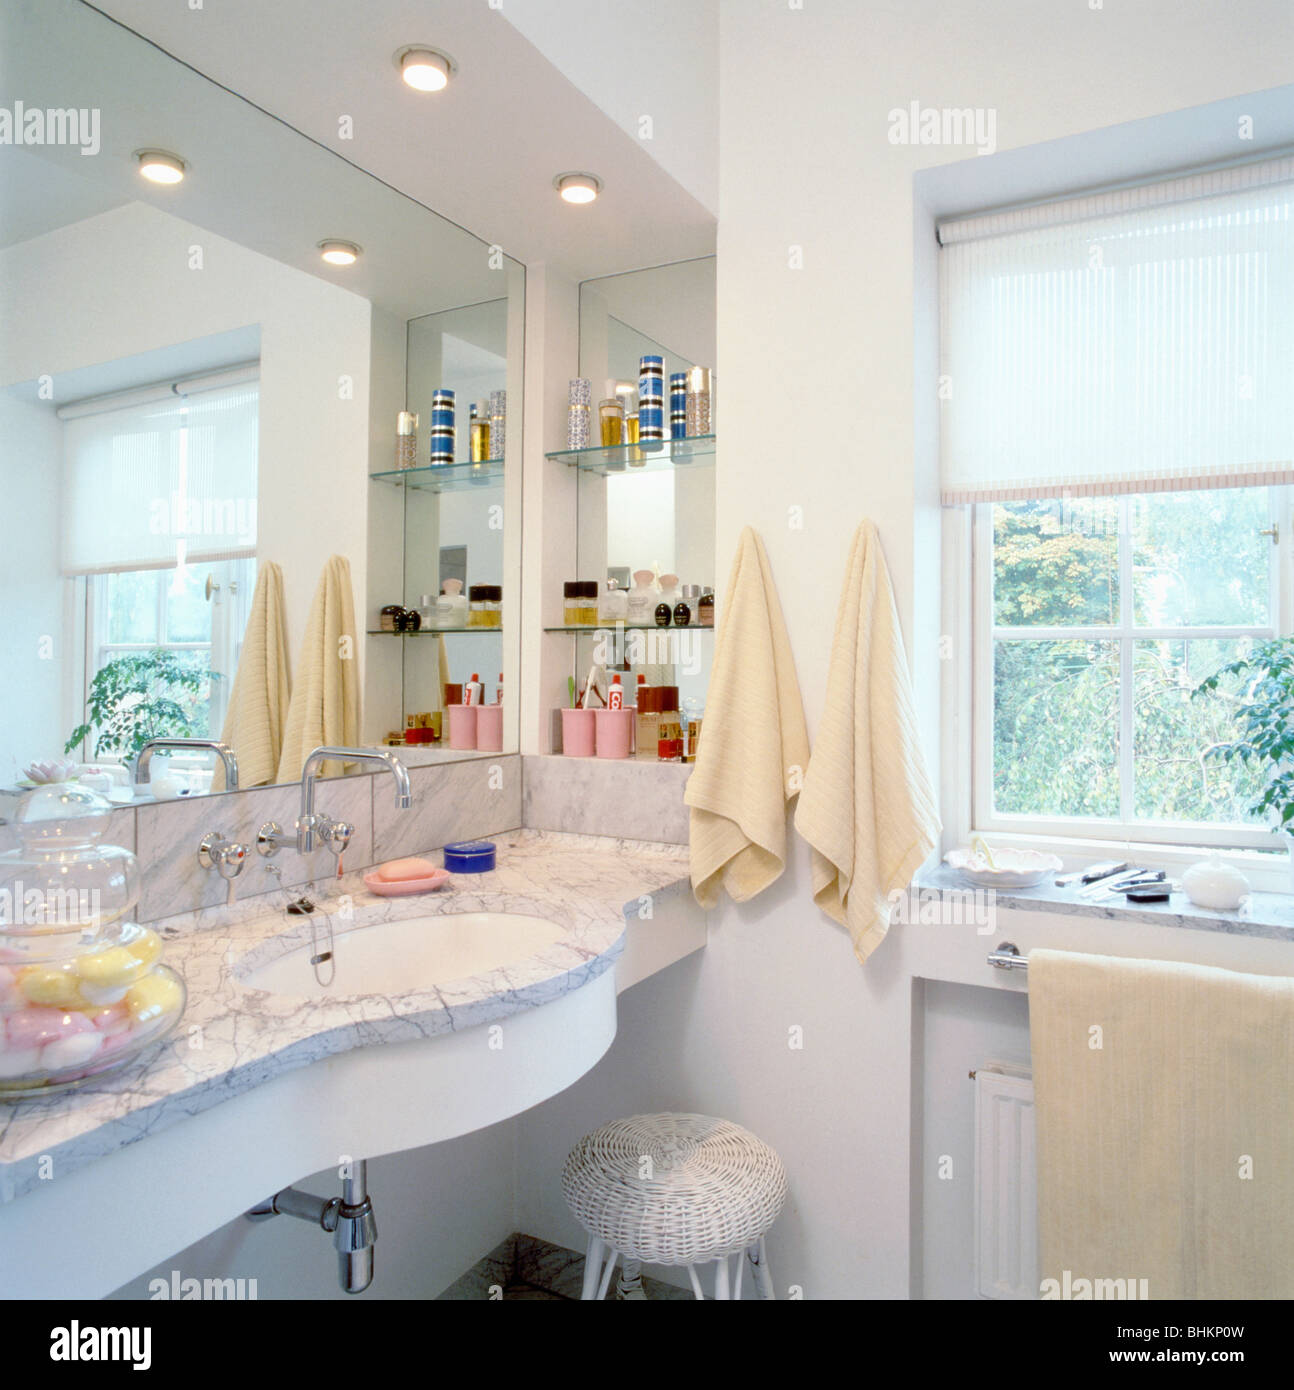 Under Set Basin In Marble Vanity Unit Below Mirror And Recessed Lighting In  Small White Bathroom With White Blind On Window